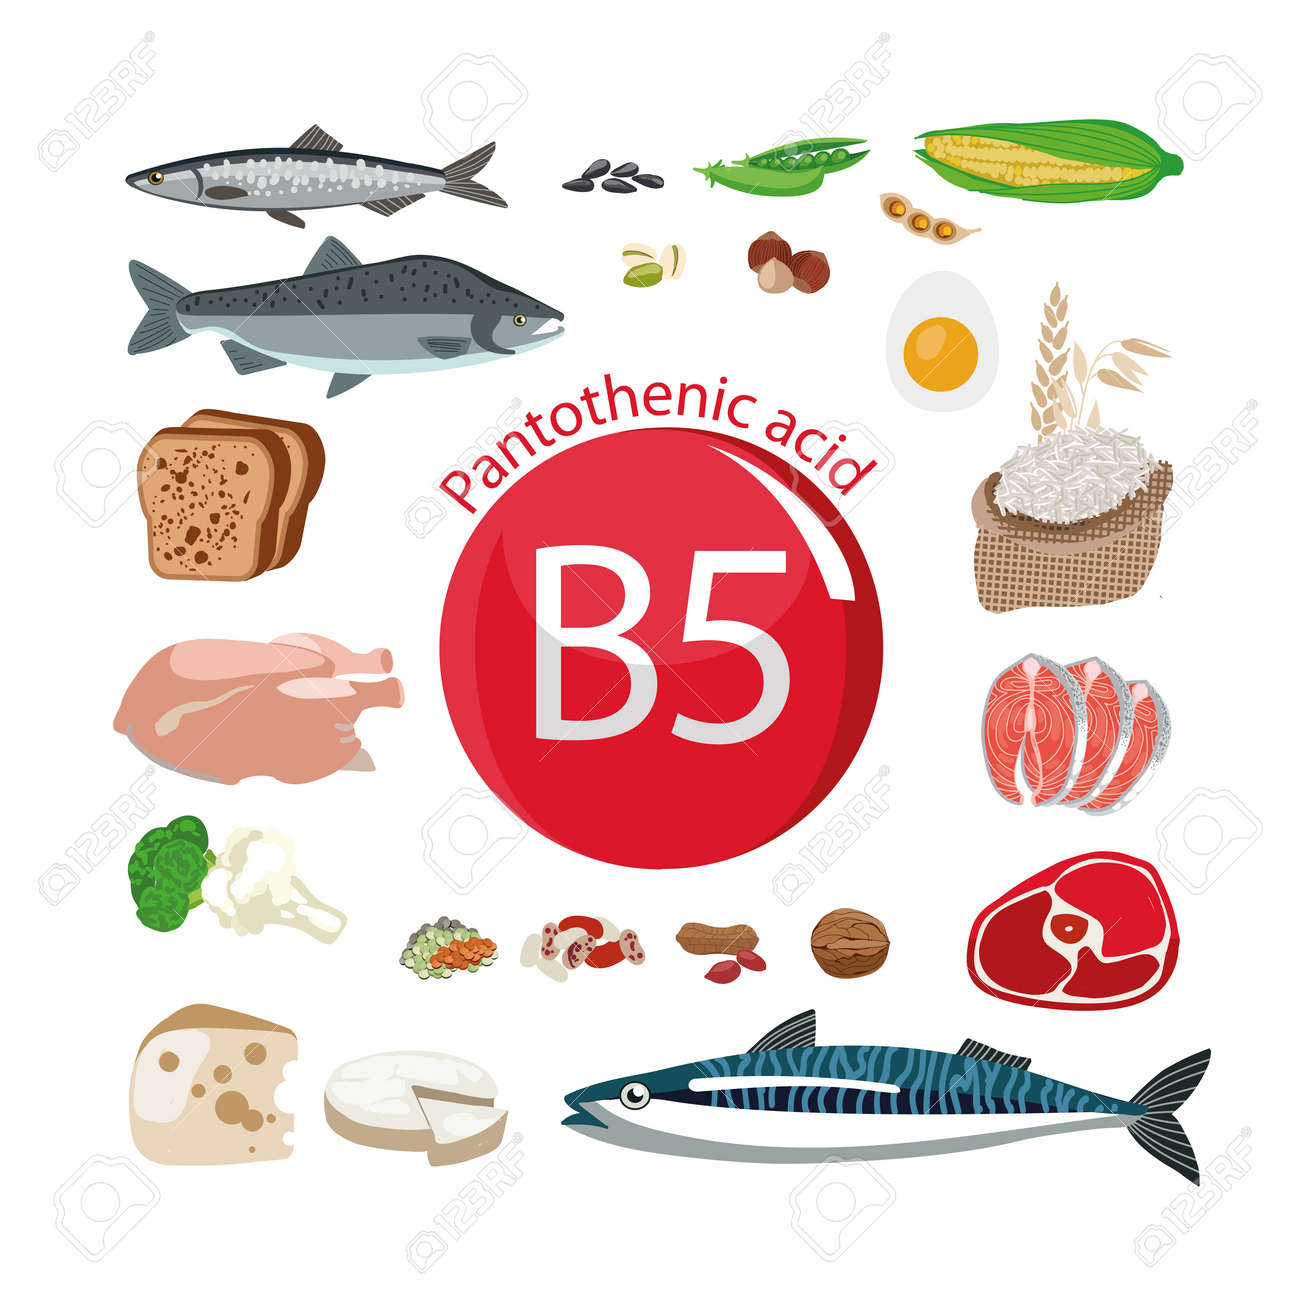 Vitamin B5 (pantothenic acid) 59